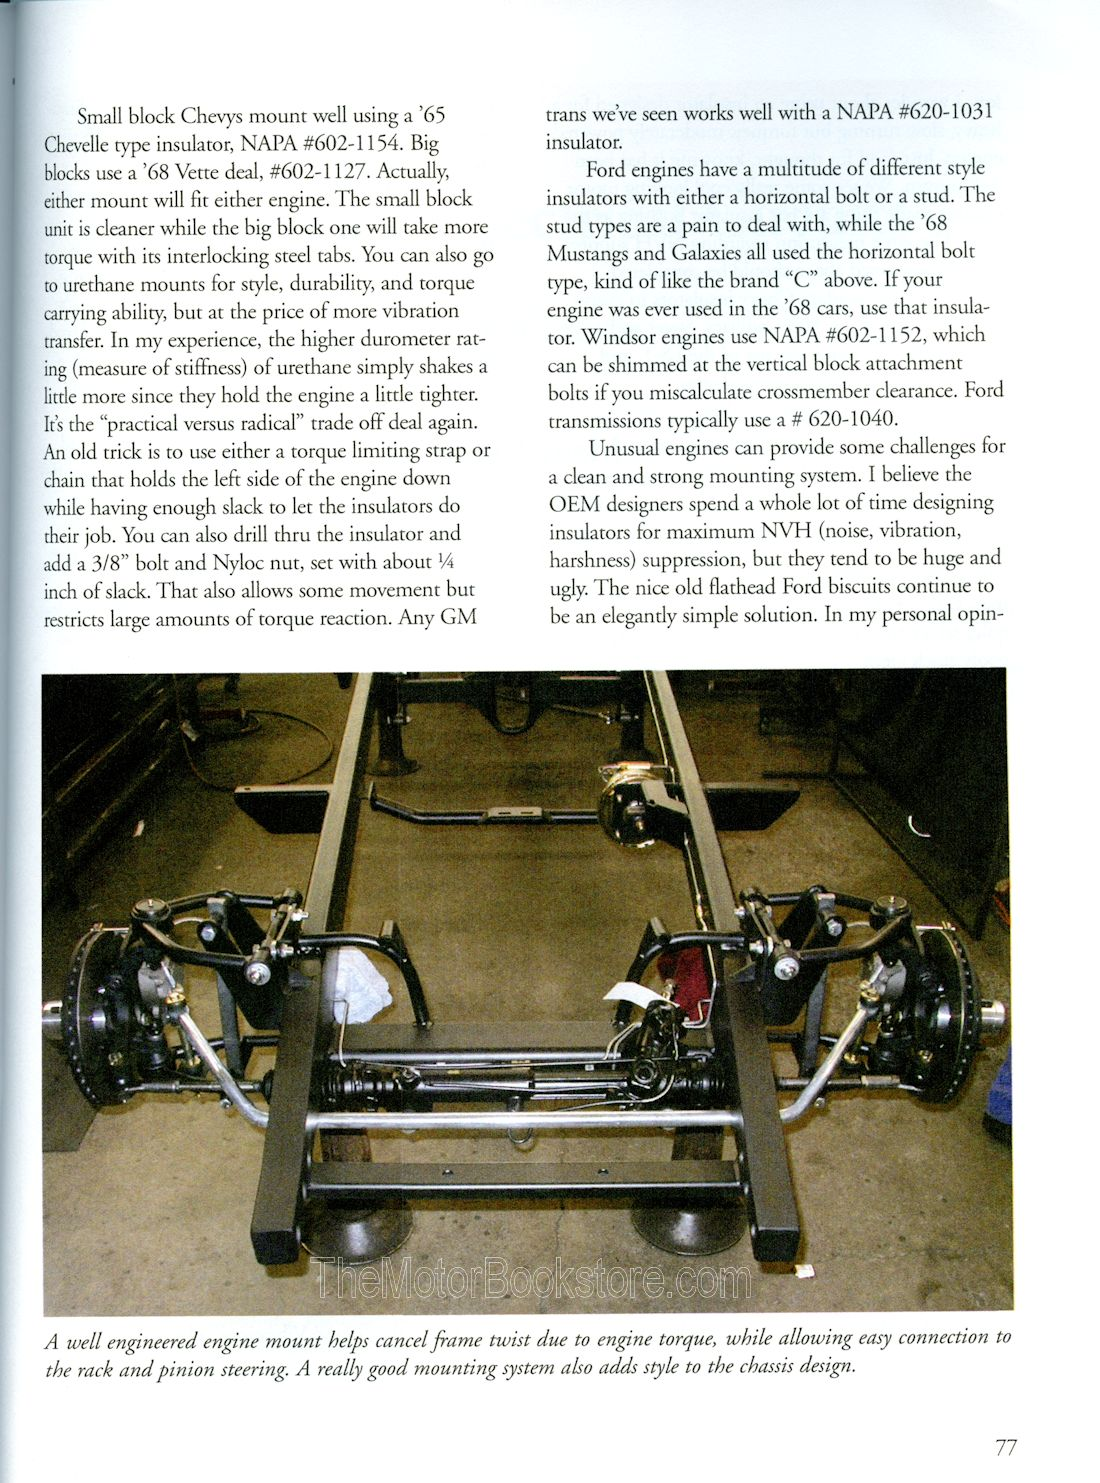 Building Hot Rods - Engine Mount Sample Page - WP343